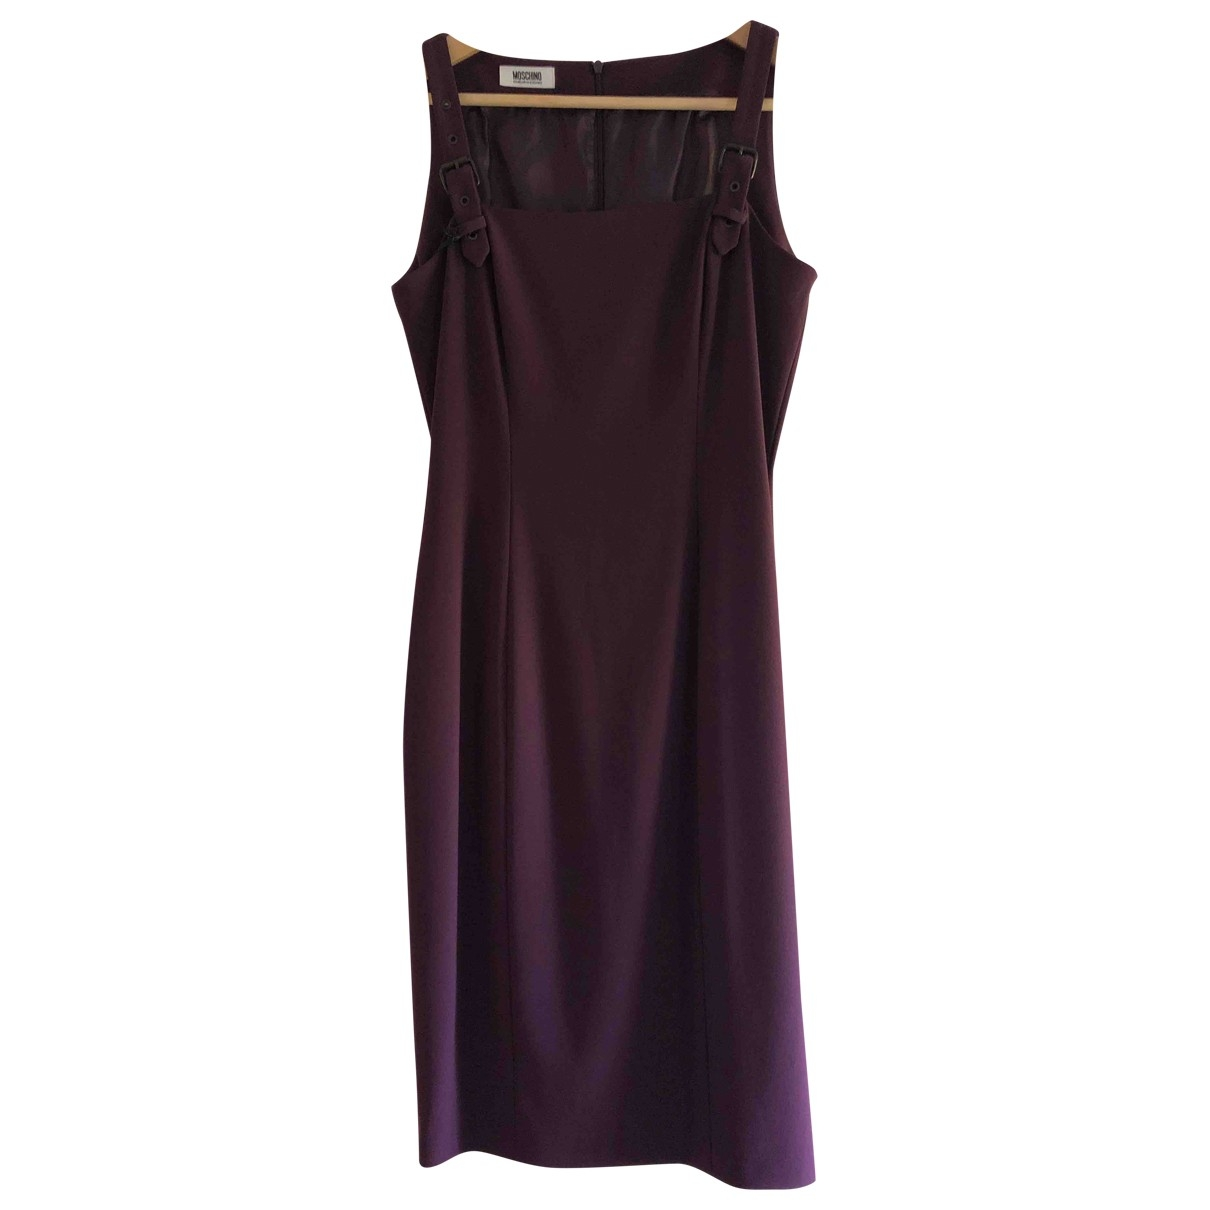 Moschino Cheap And Chic \N Kleid in  Lila Synthetik